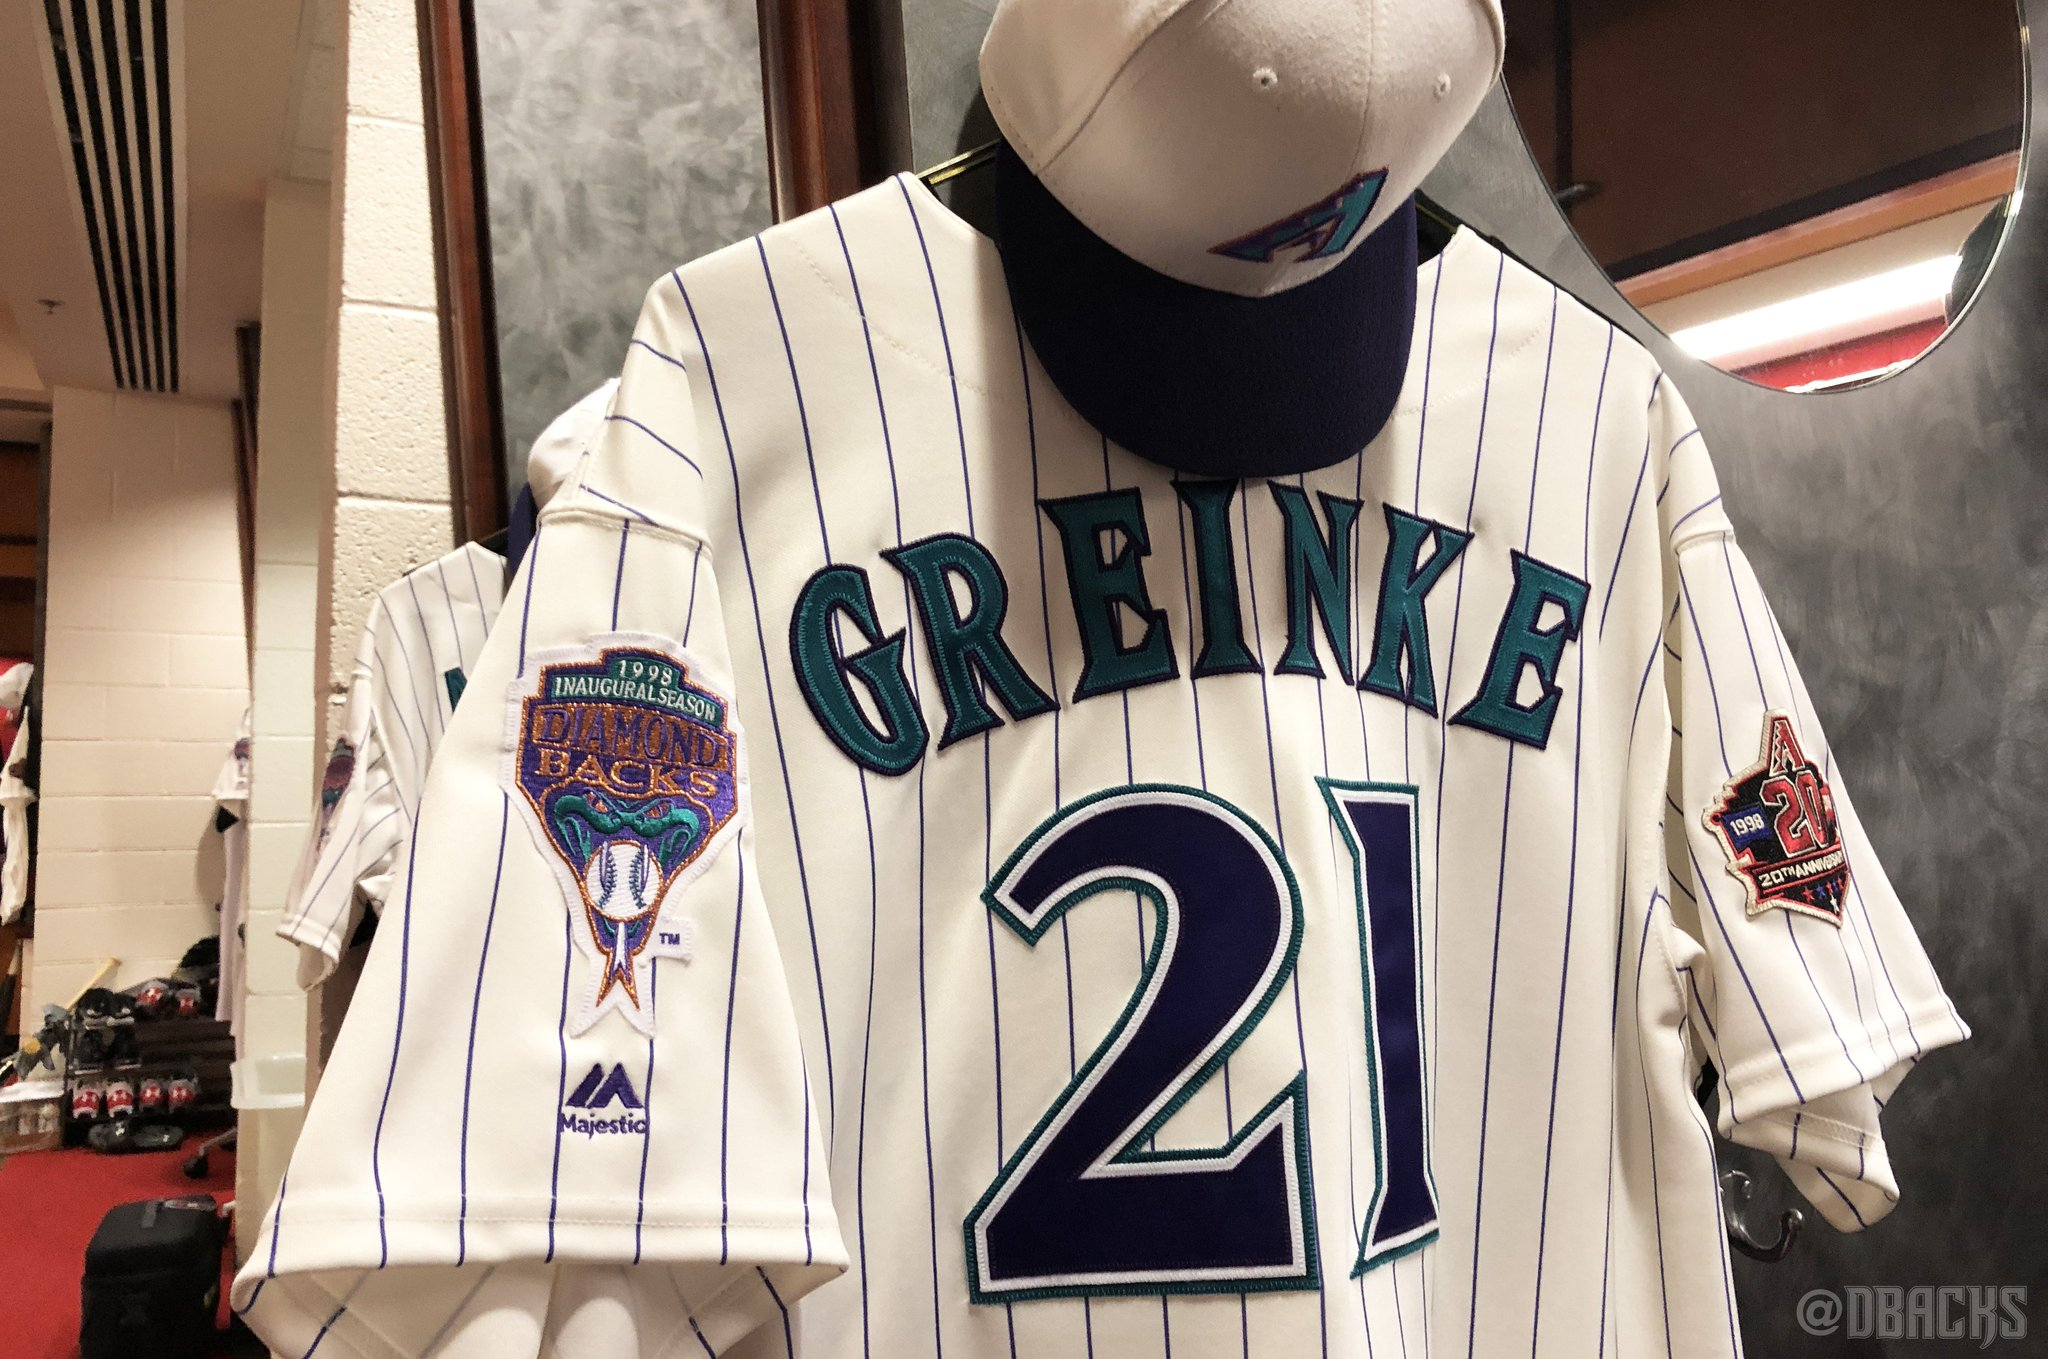 Throwing it back to the inaugural season on #DbacksTBT. �� https://t.co/8oR0Q4CnZw